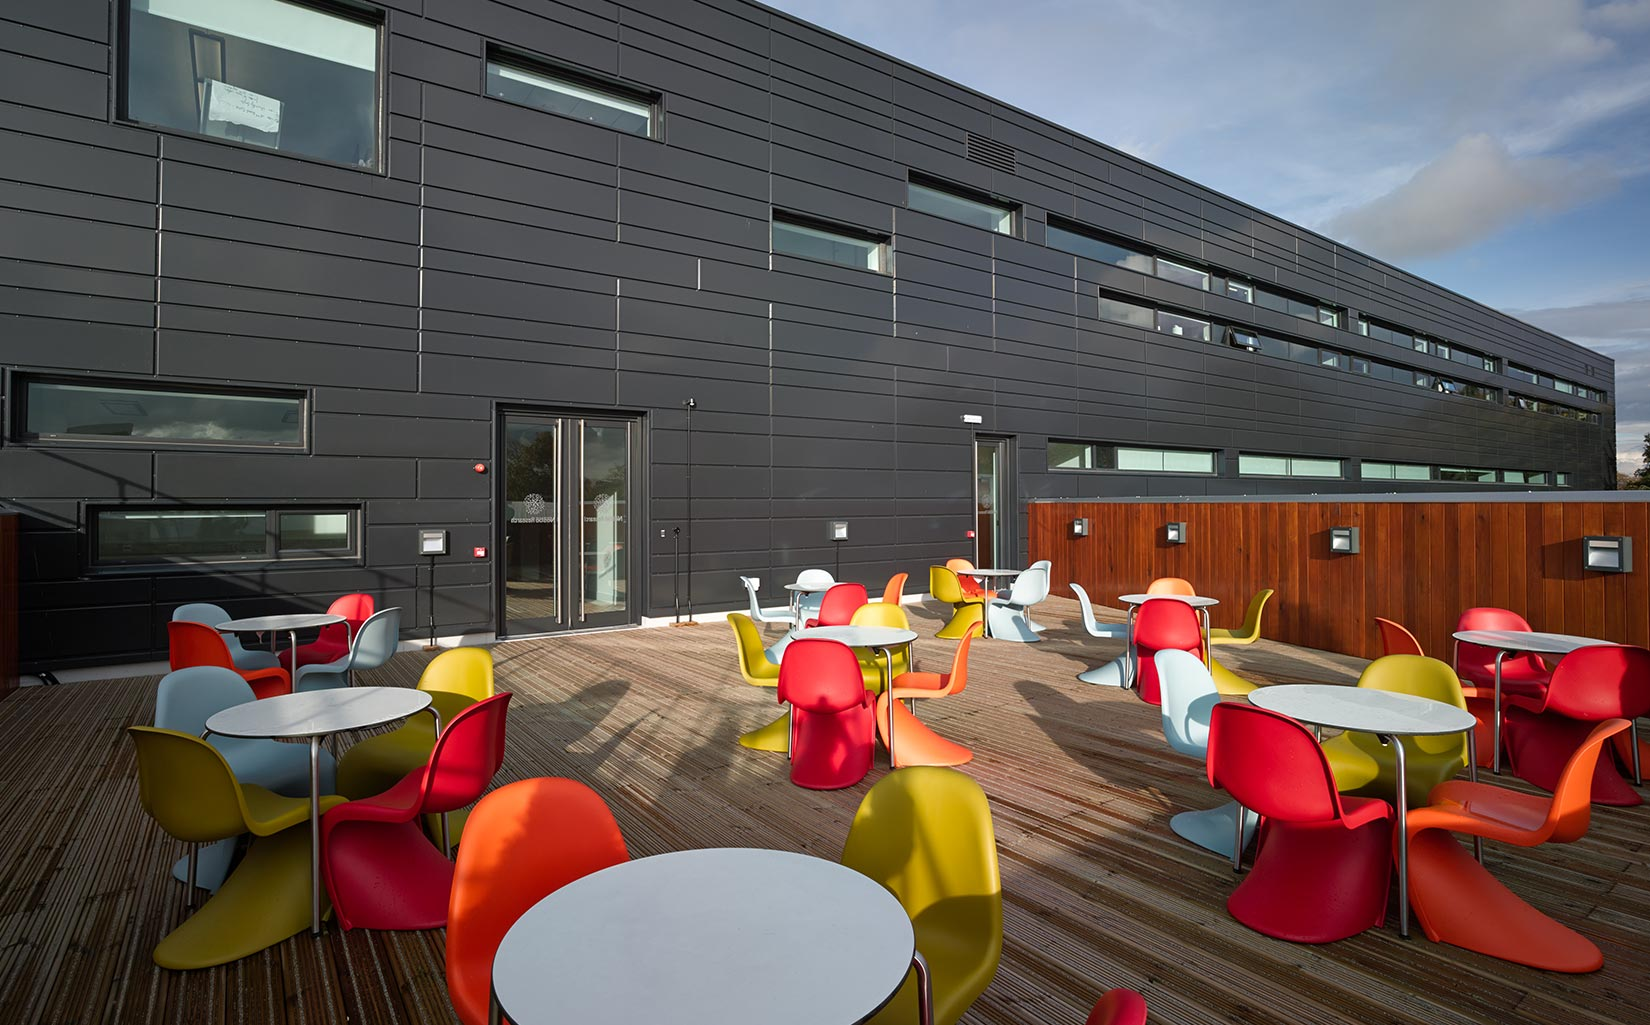 Nestlé Product Technology Centre, Exterior Seating Area